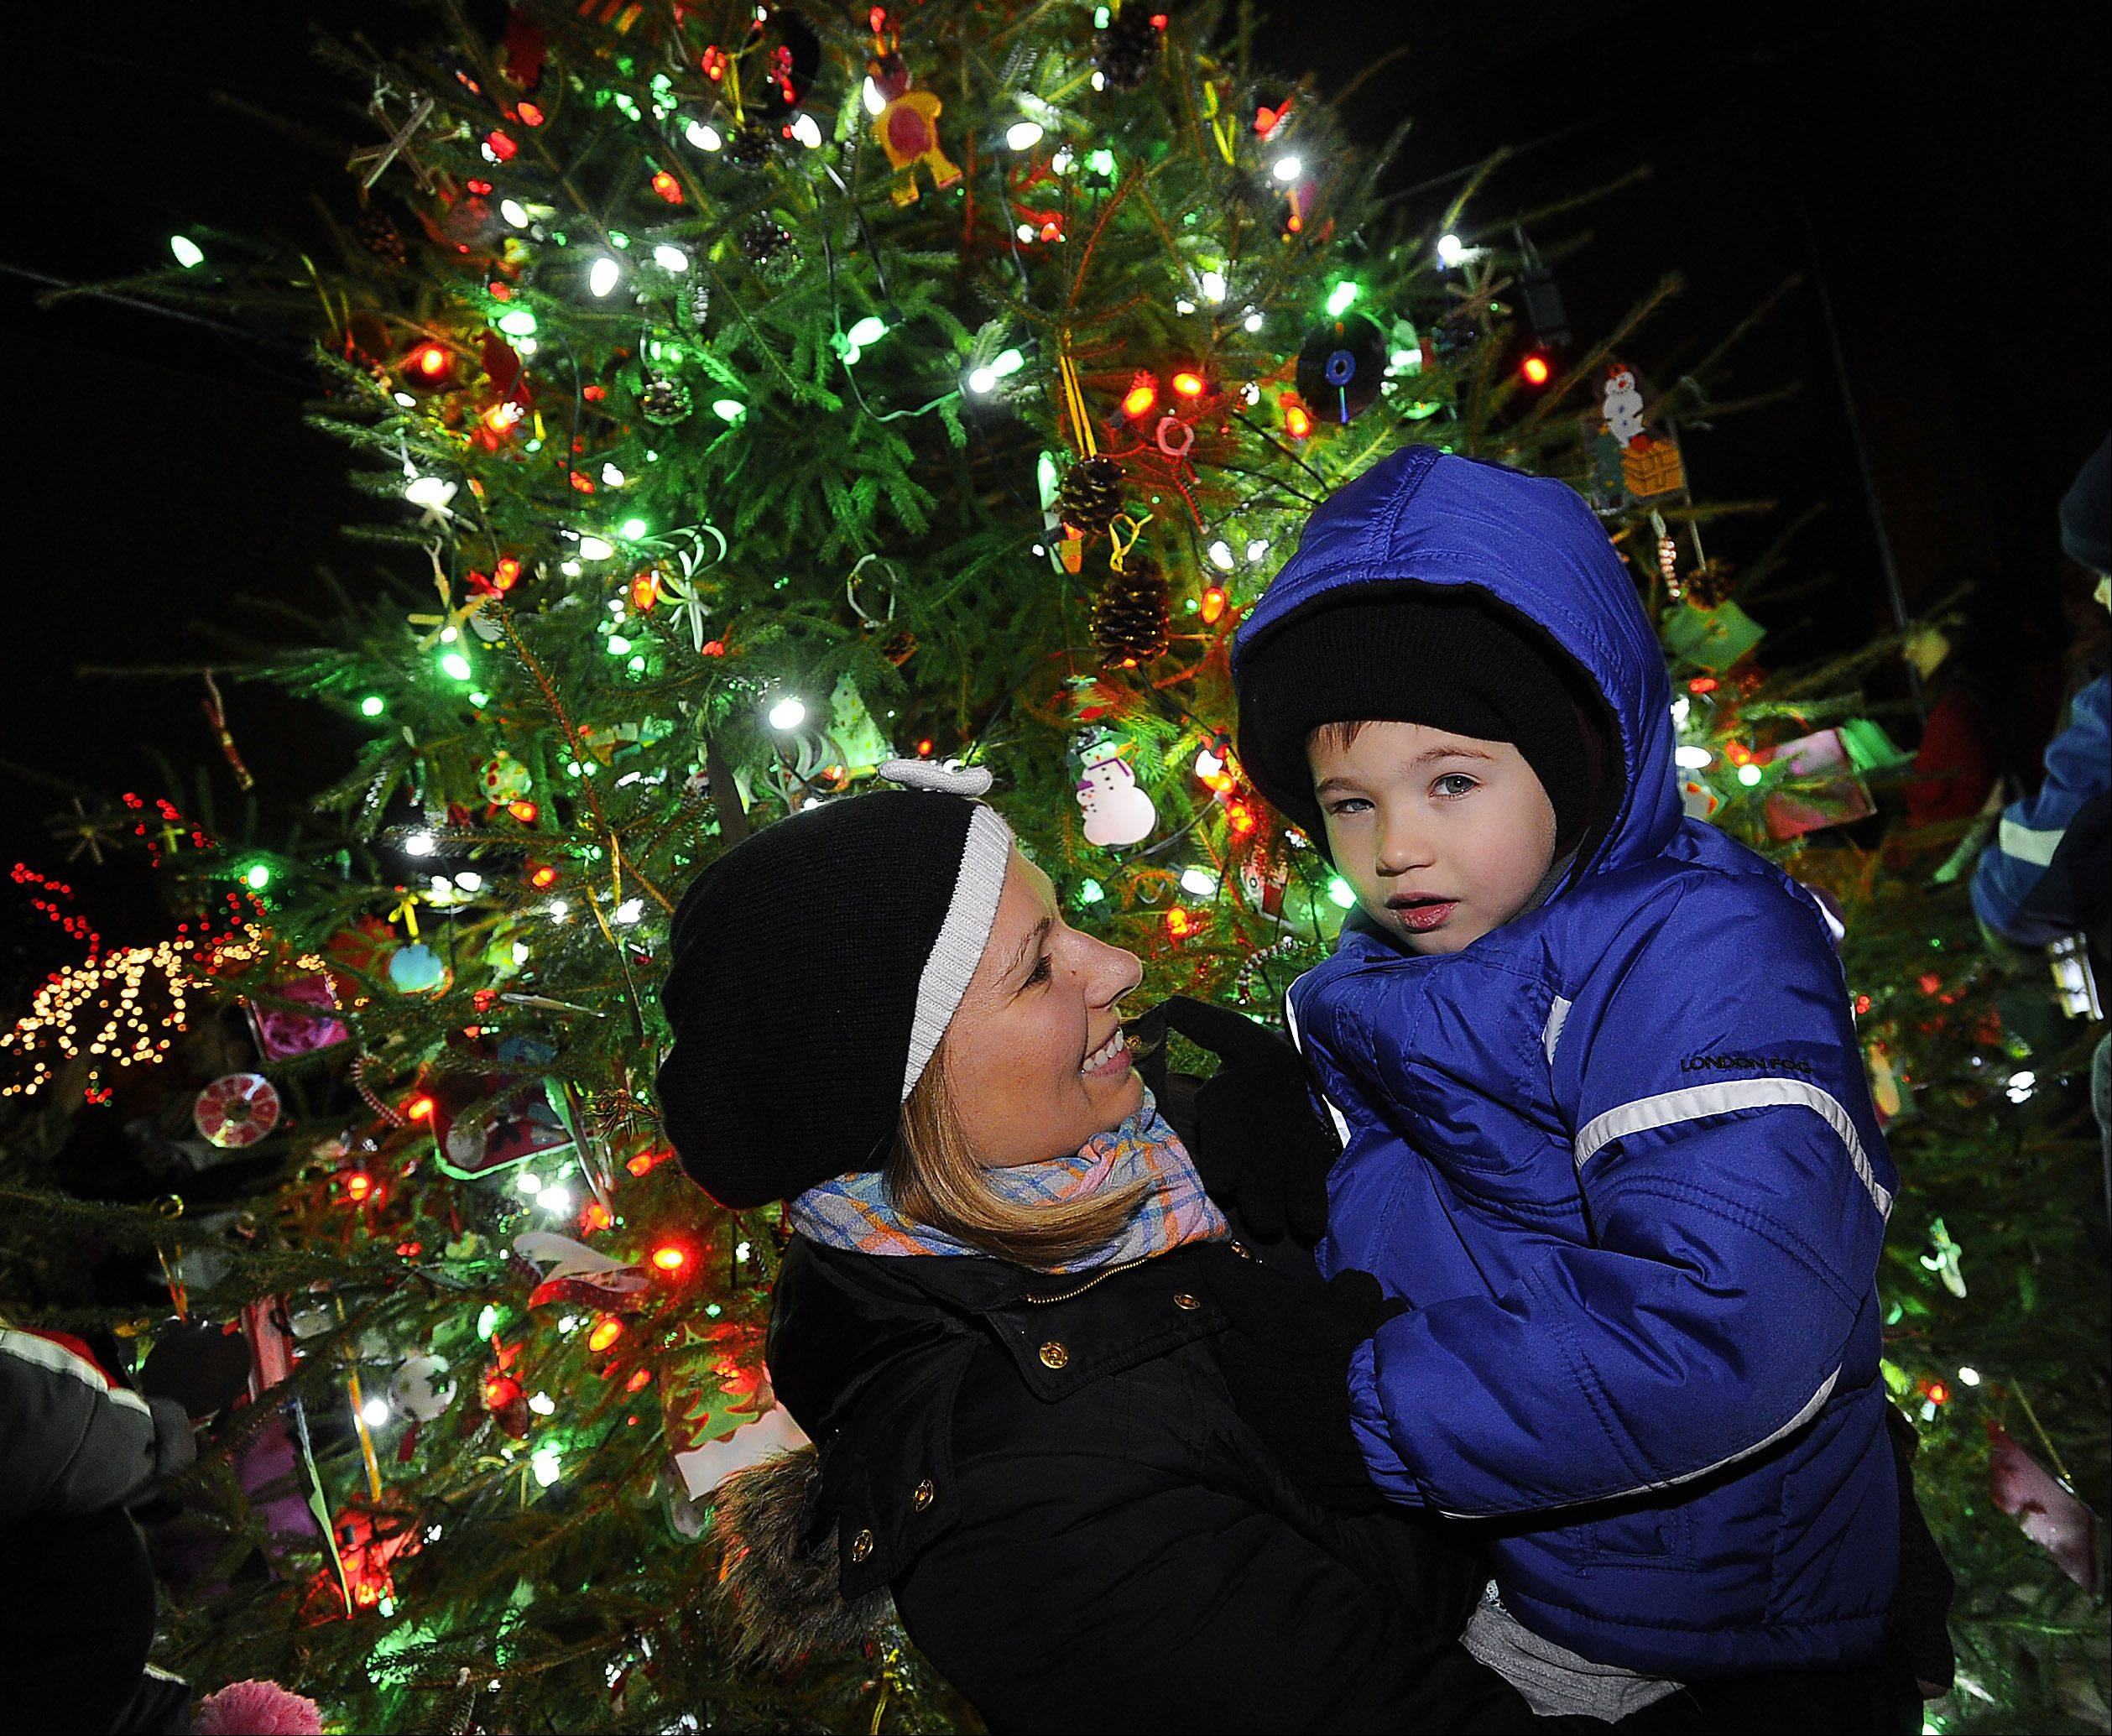 Agata Opoka of Schaumburg and her son Filip, 4, celebrate the holidays with a little illumination on Friday night in Schaumburg.